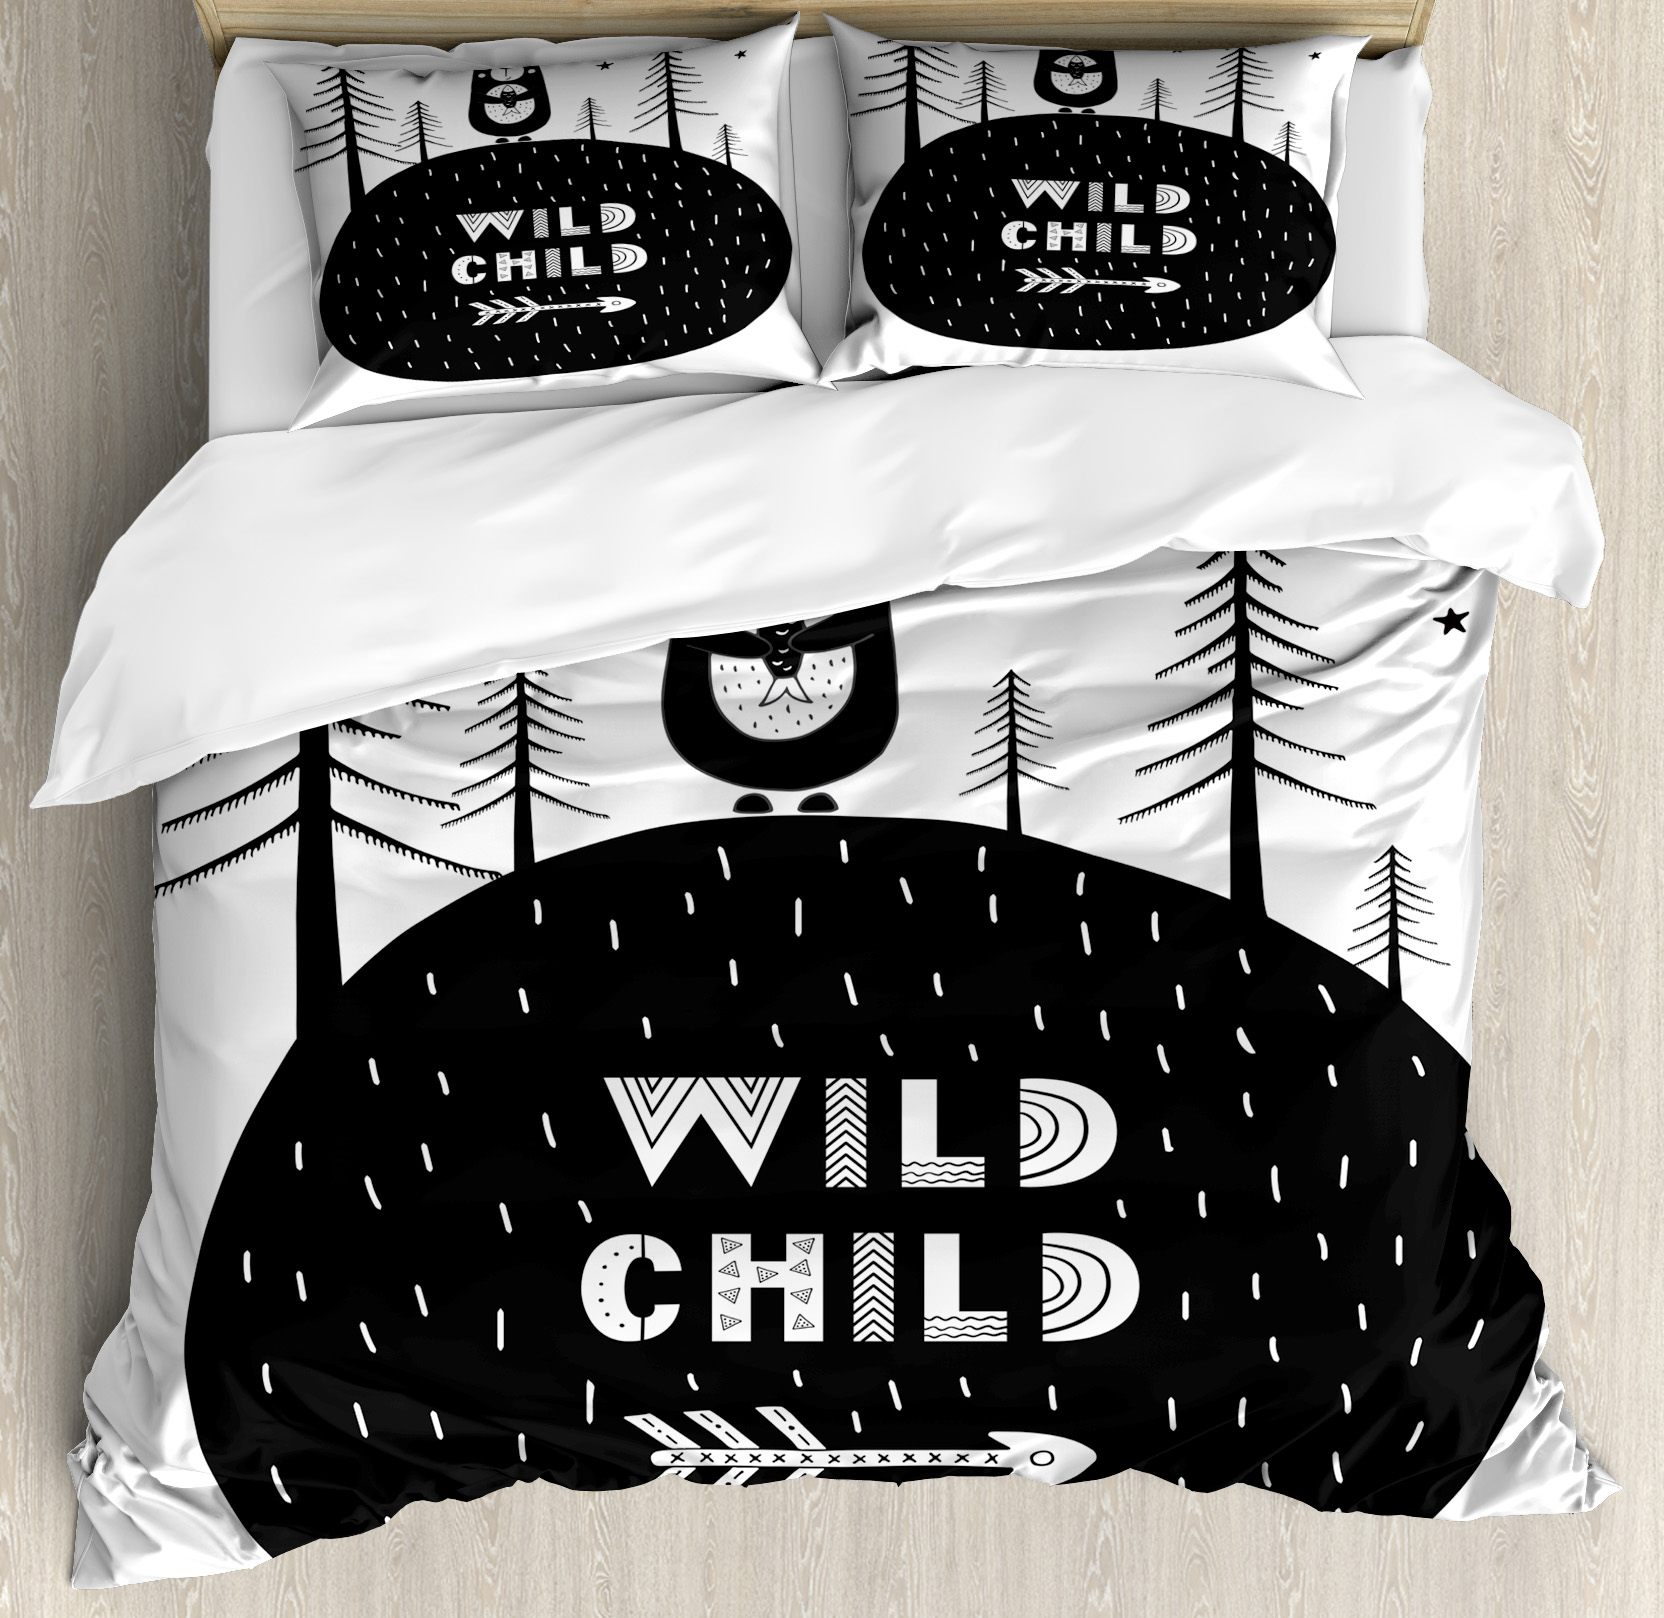 Black and White Queen Size Duvet Cover Set, Hand Drawn Bear Holding a Fish with a Smile in Forest Wild Child Quote, Decorative 3 Piece Bedding Set with 2 Pillow Shams, Black and White, by Ambesonne